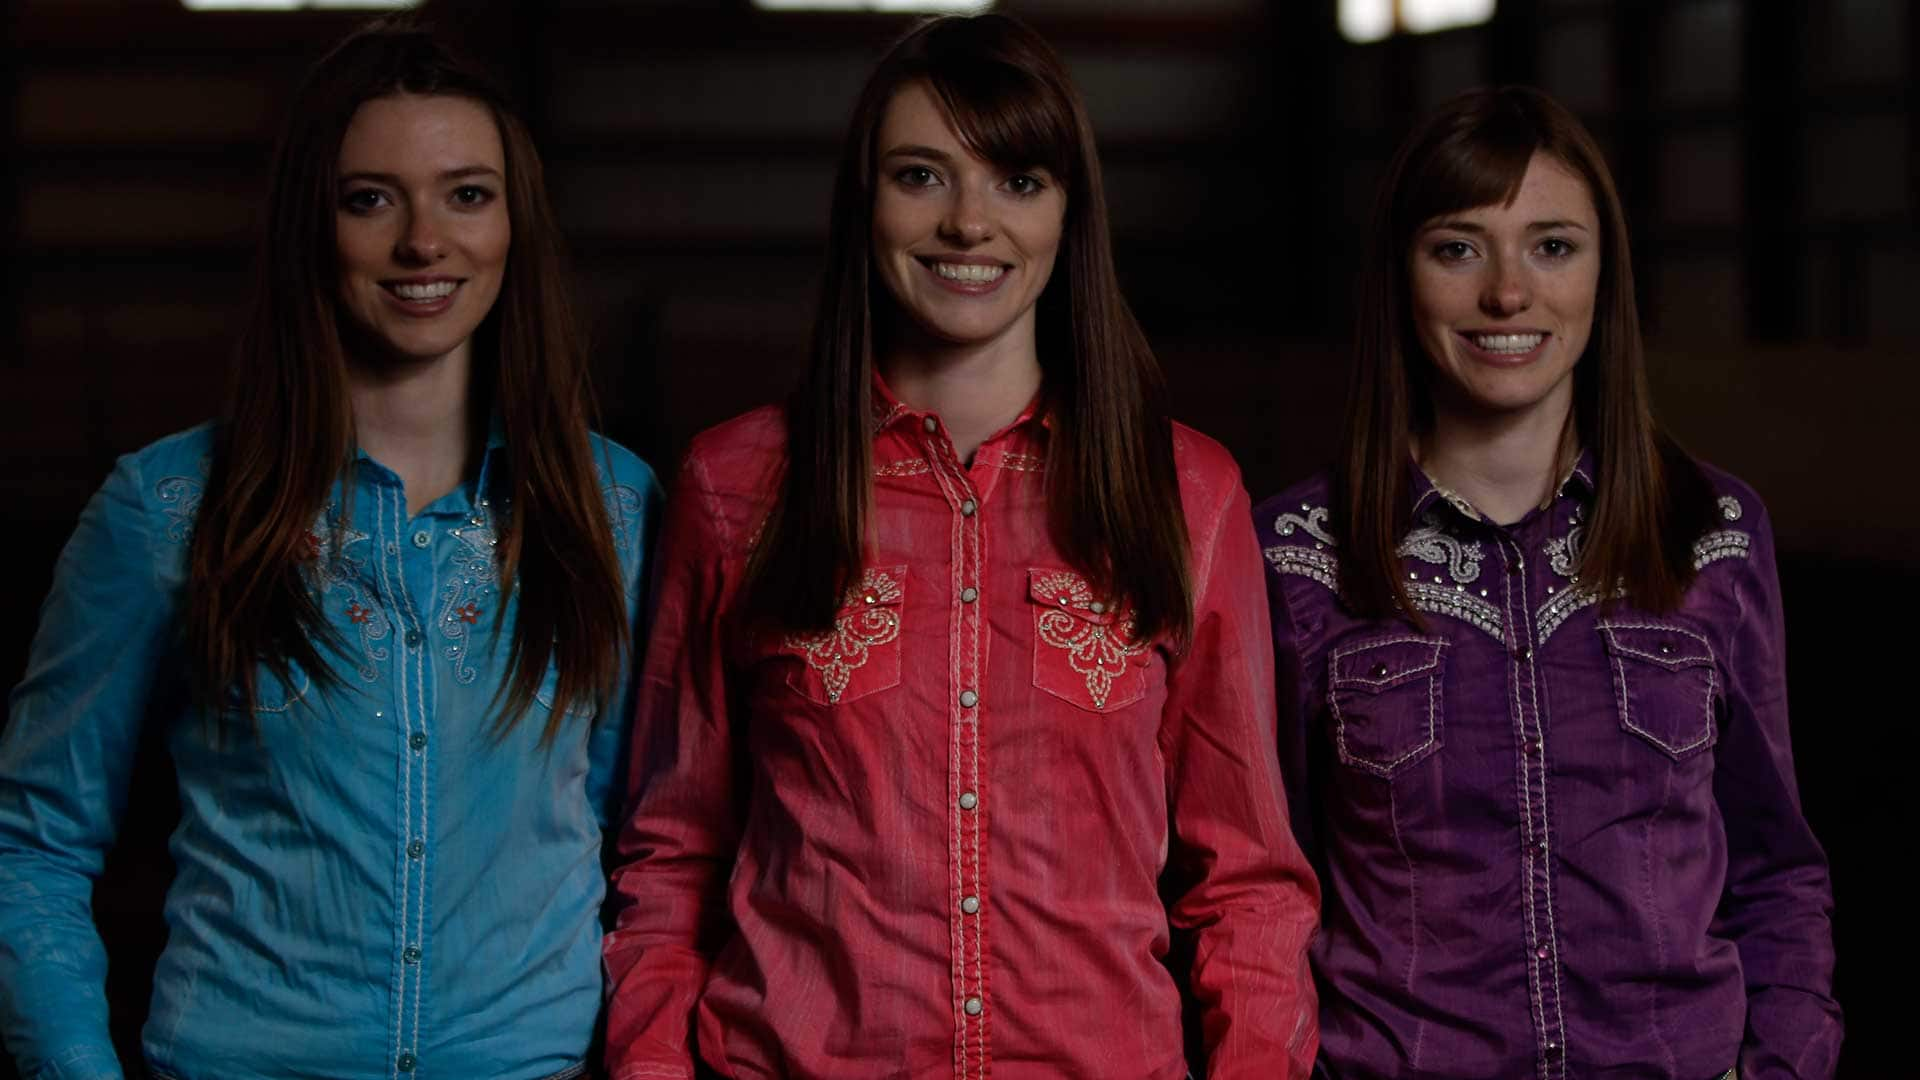 Cowgirls: Meet the Wills Triplets